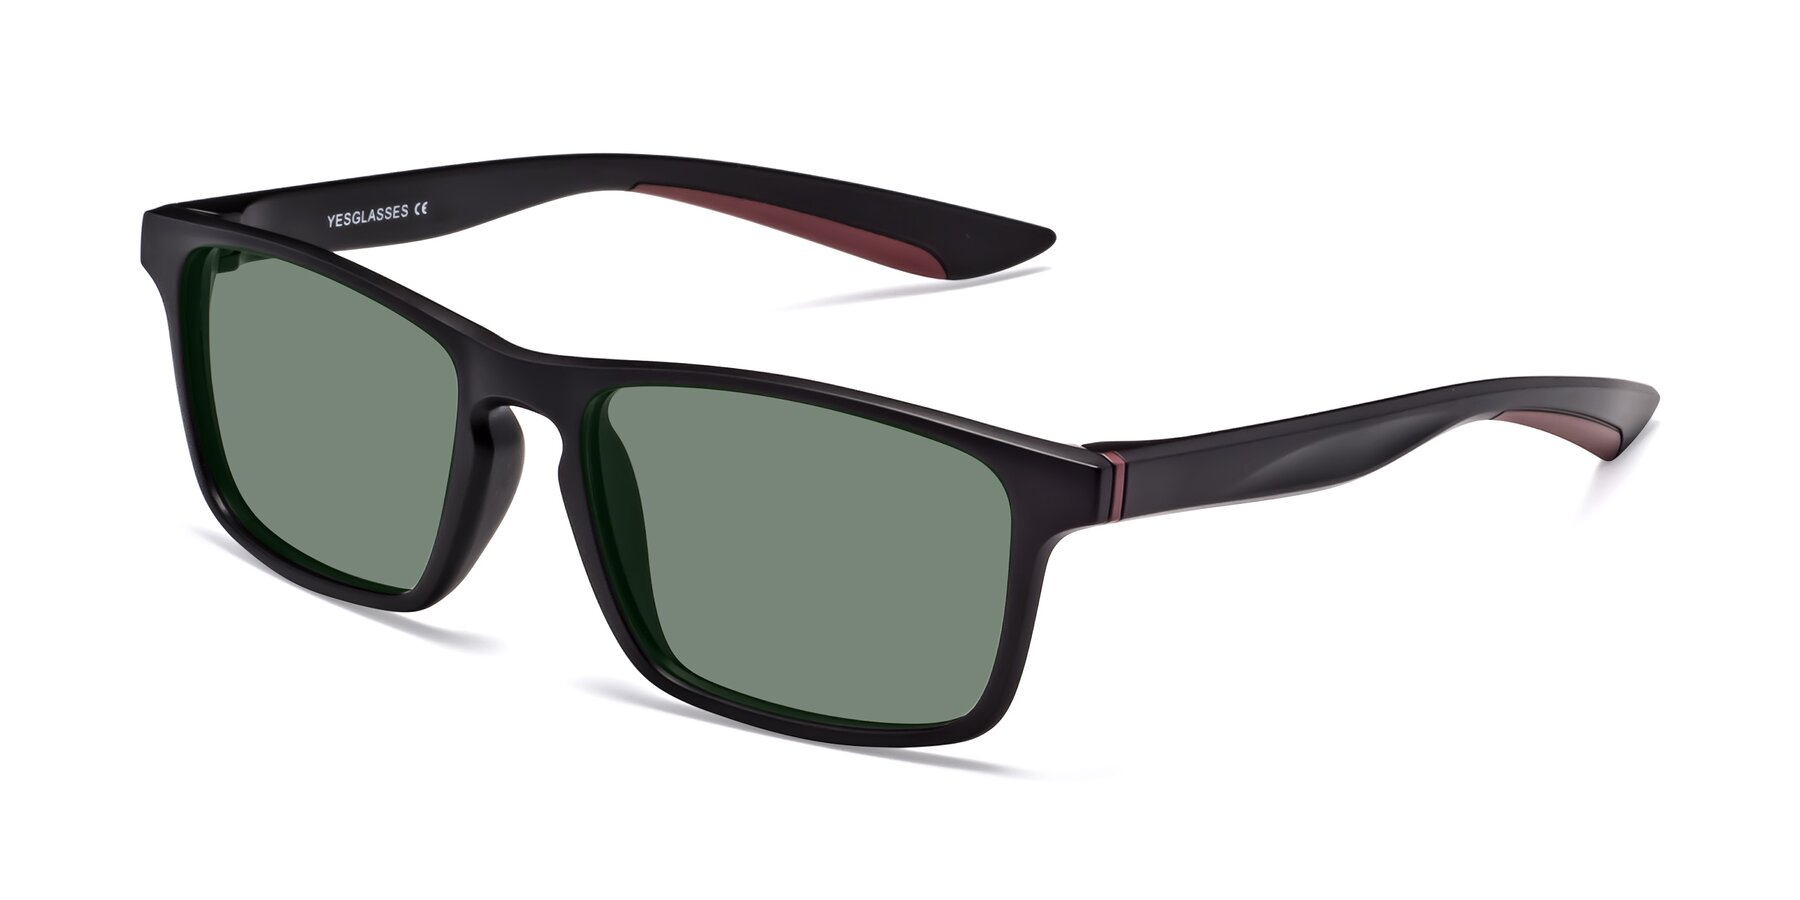 Angle of Passion in Matte Black-Wine with Medium Green Tinted Lenses